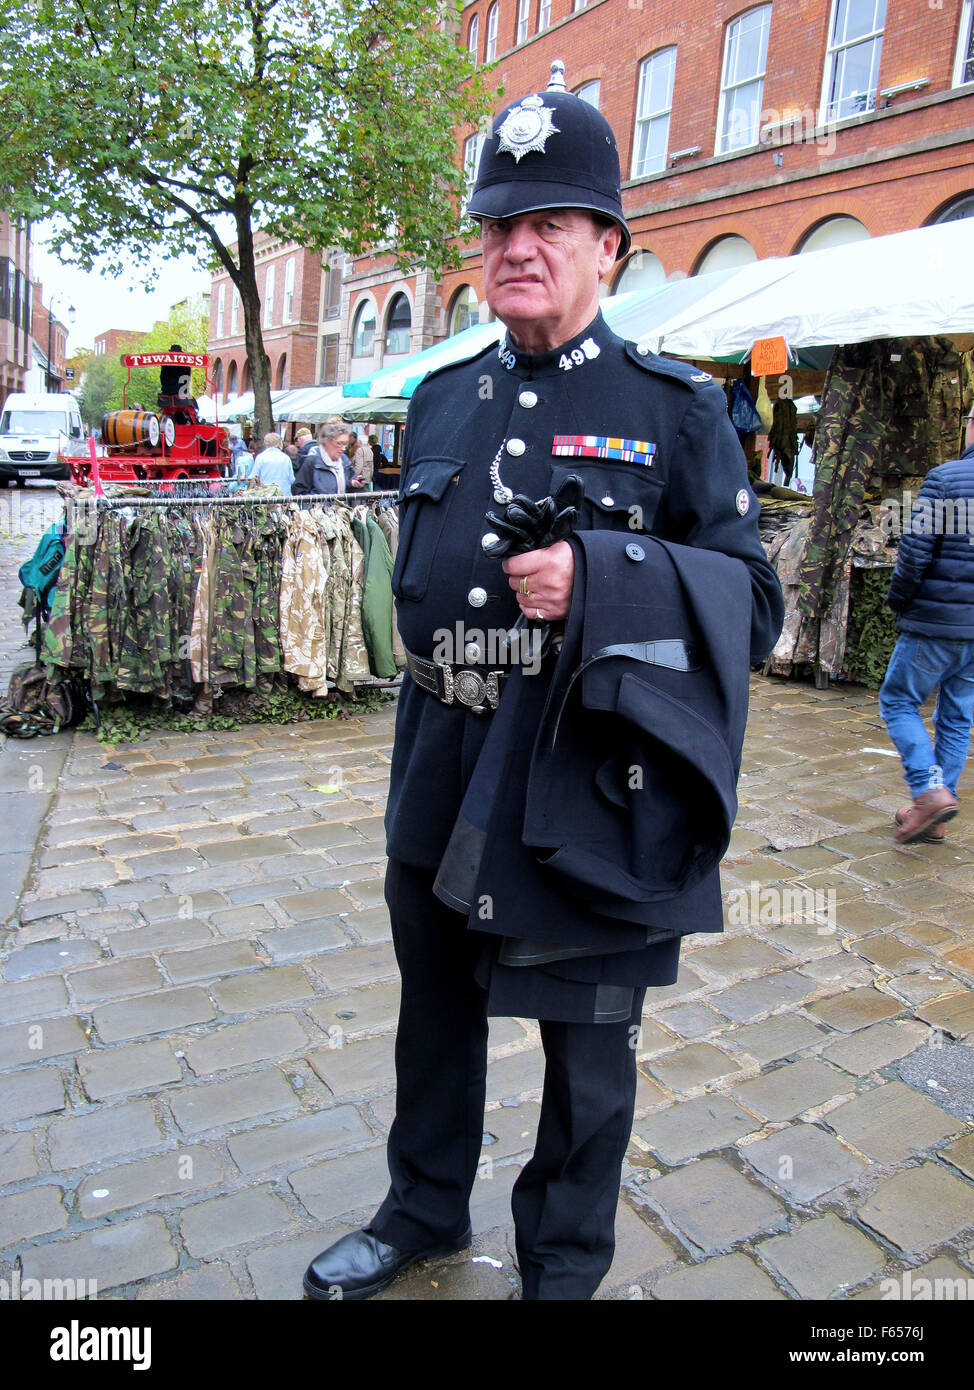 CHESTERFIELD, DERBYSHIRE, UK. OCTOBER 29, 2015.  A gentleman in a policeman's 1950s dress uniform of PC 49 at - Stock Image